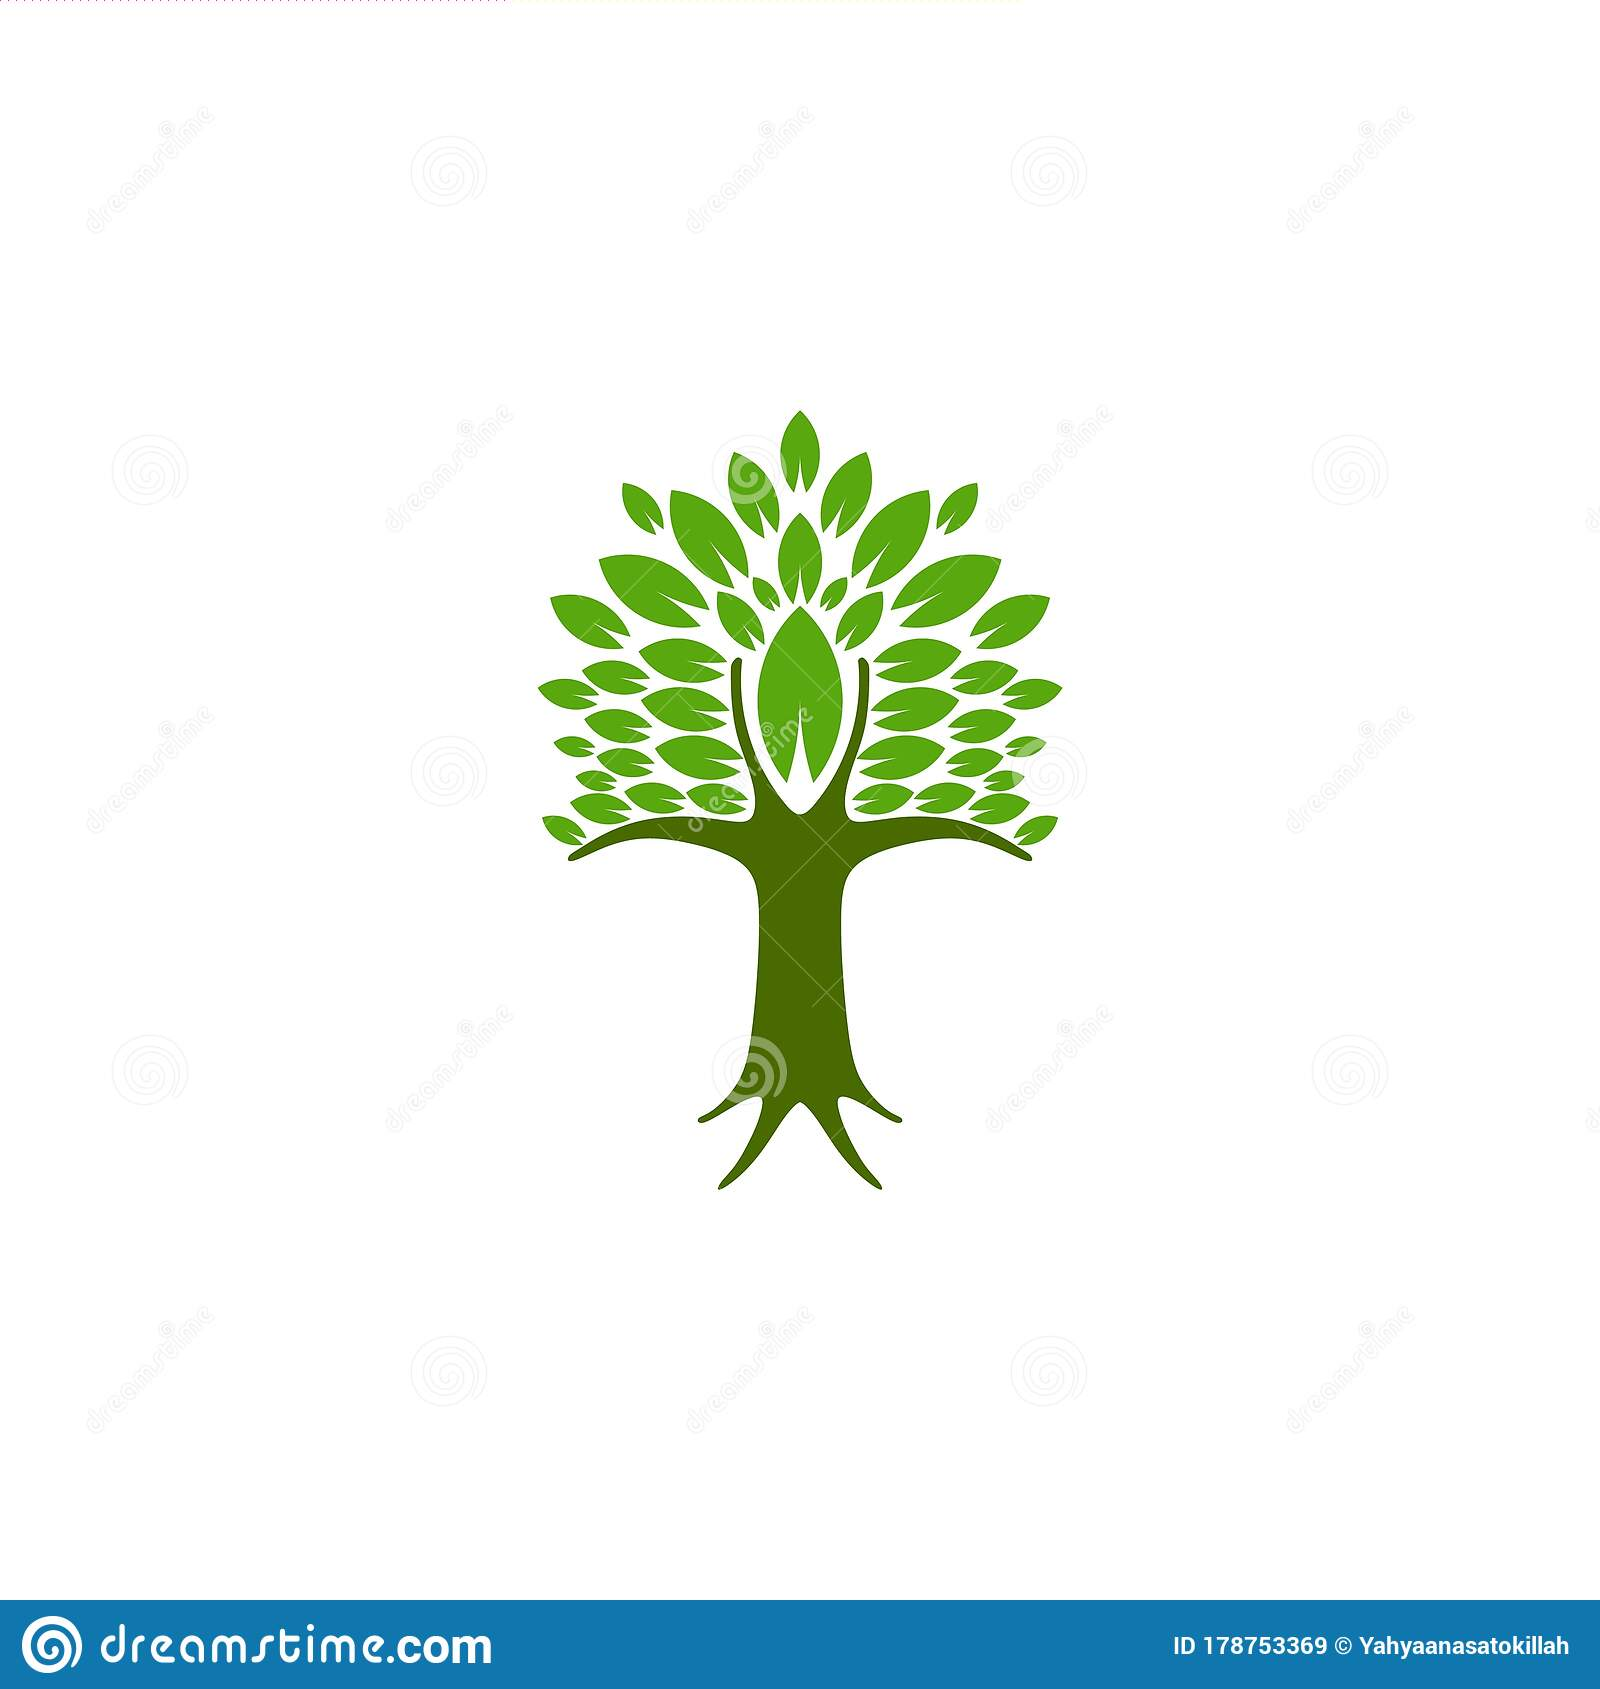 Tree Logo Ideas Inspiration Logo Design Template Vector Illustration Isolated On White Background Stock Vector Illustration Of Healthy Clever 178753369